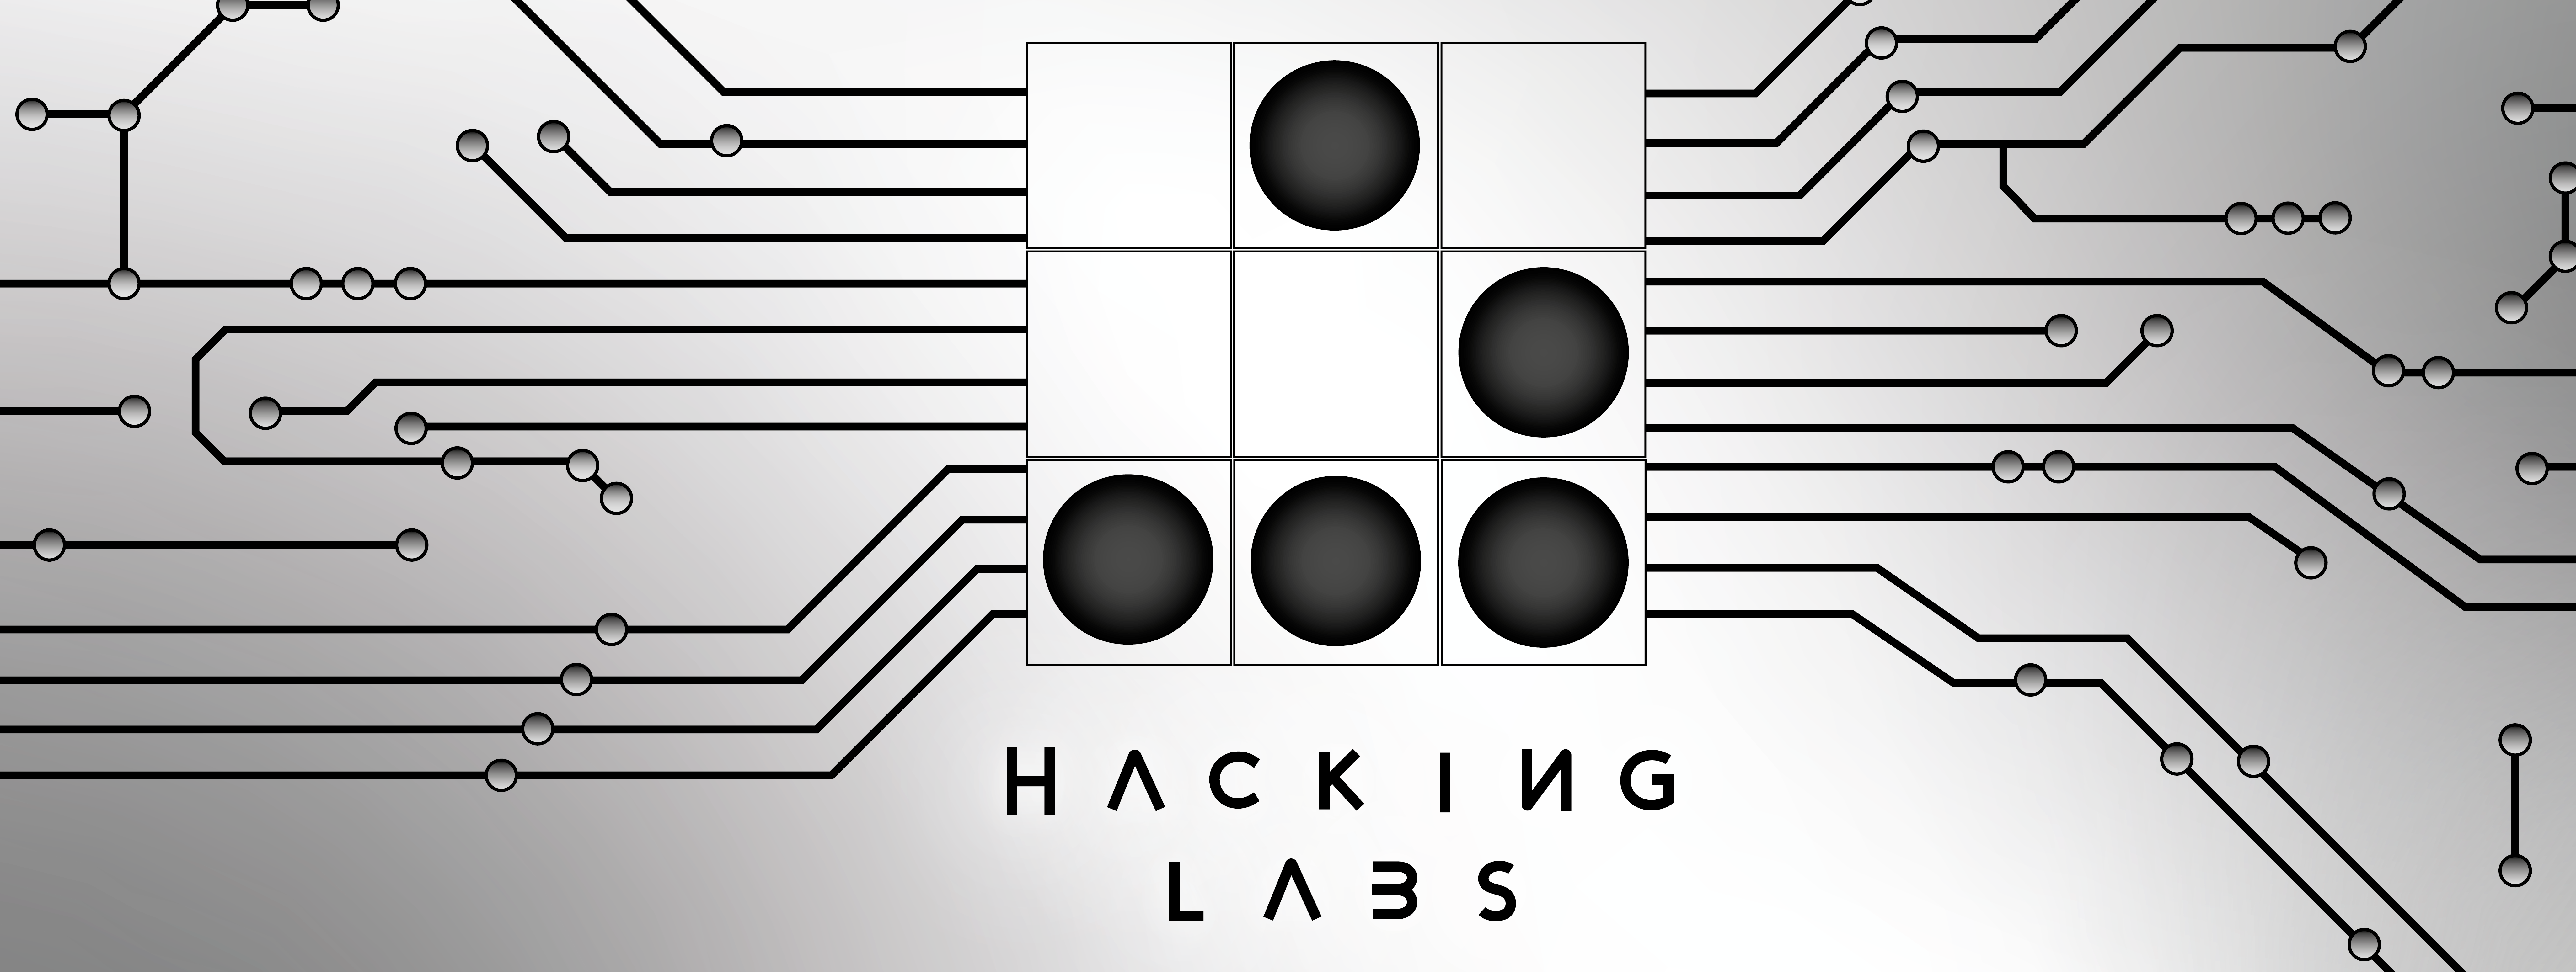 hacking-labs_lungo